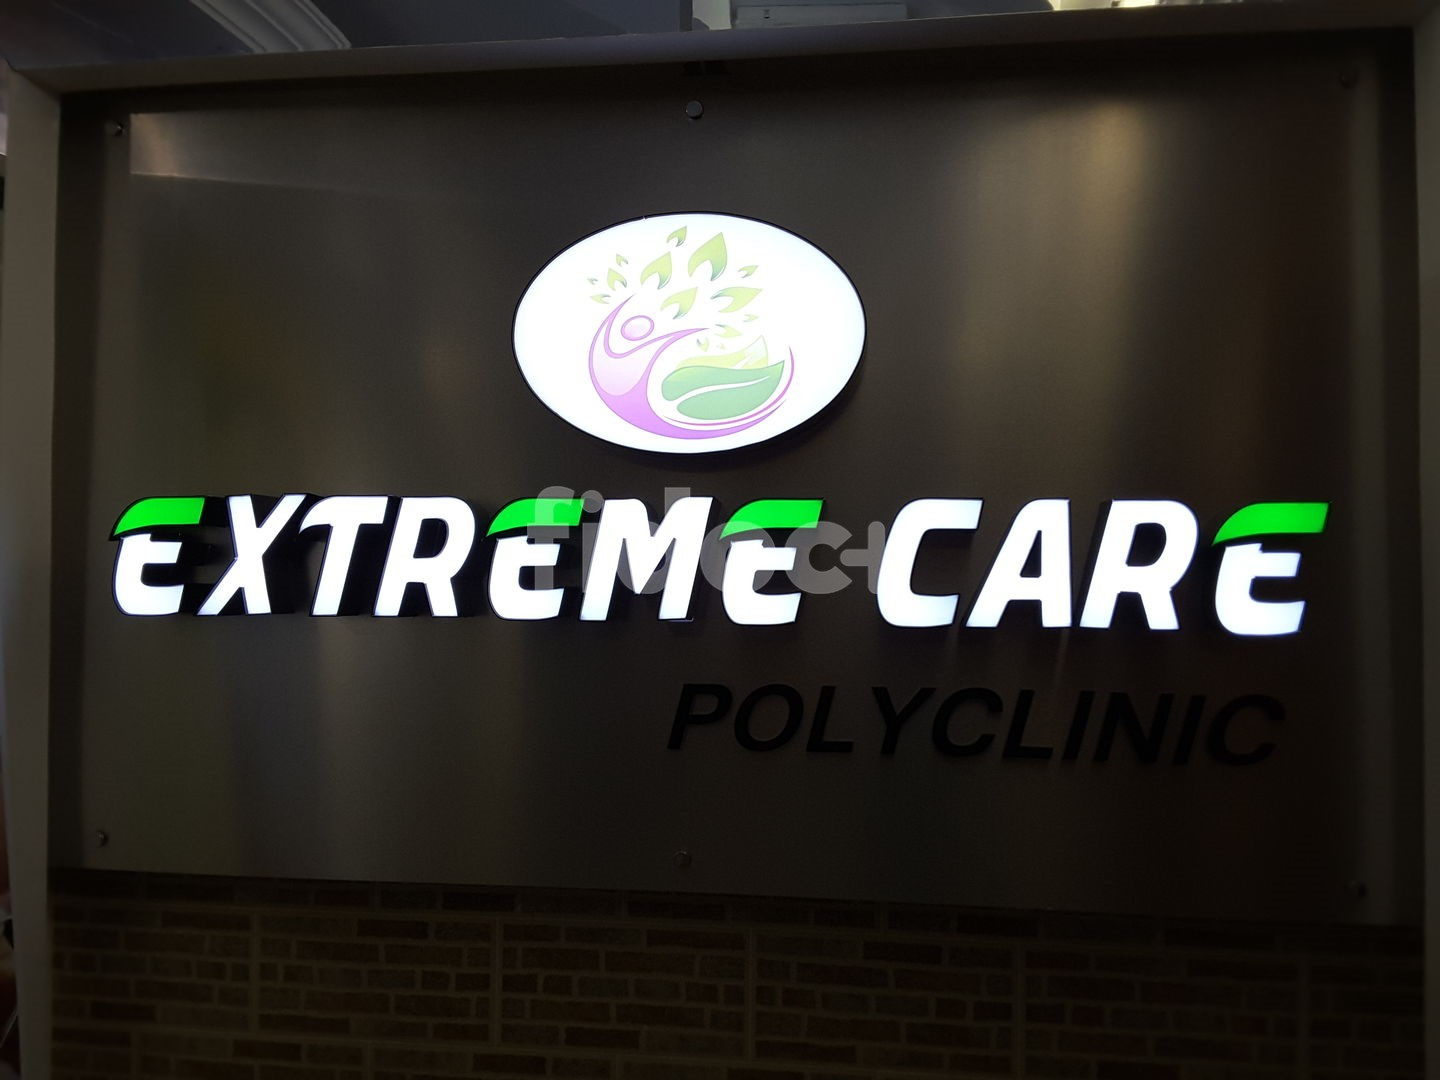 Extreme Care Polyclinic, Dubai